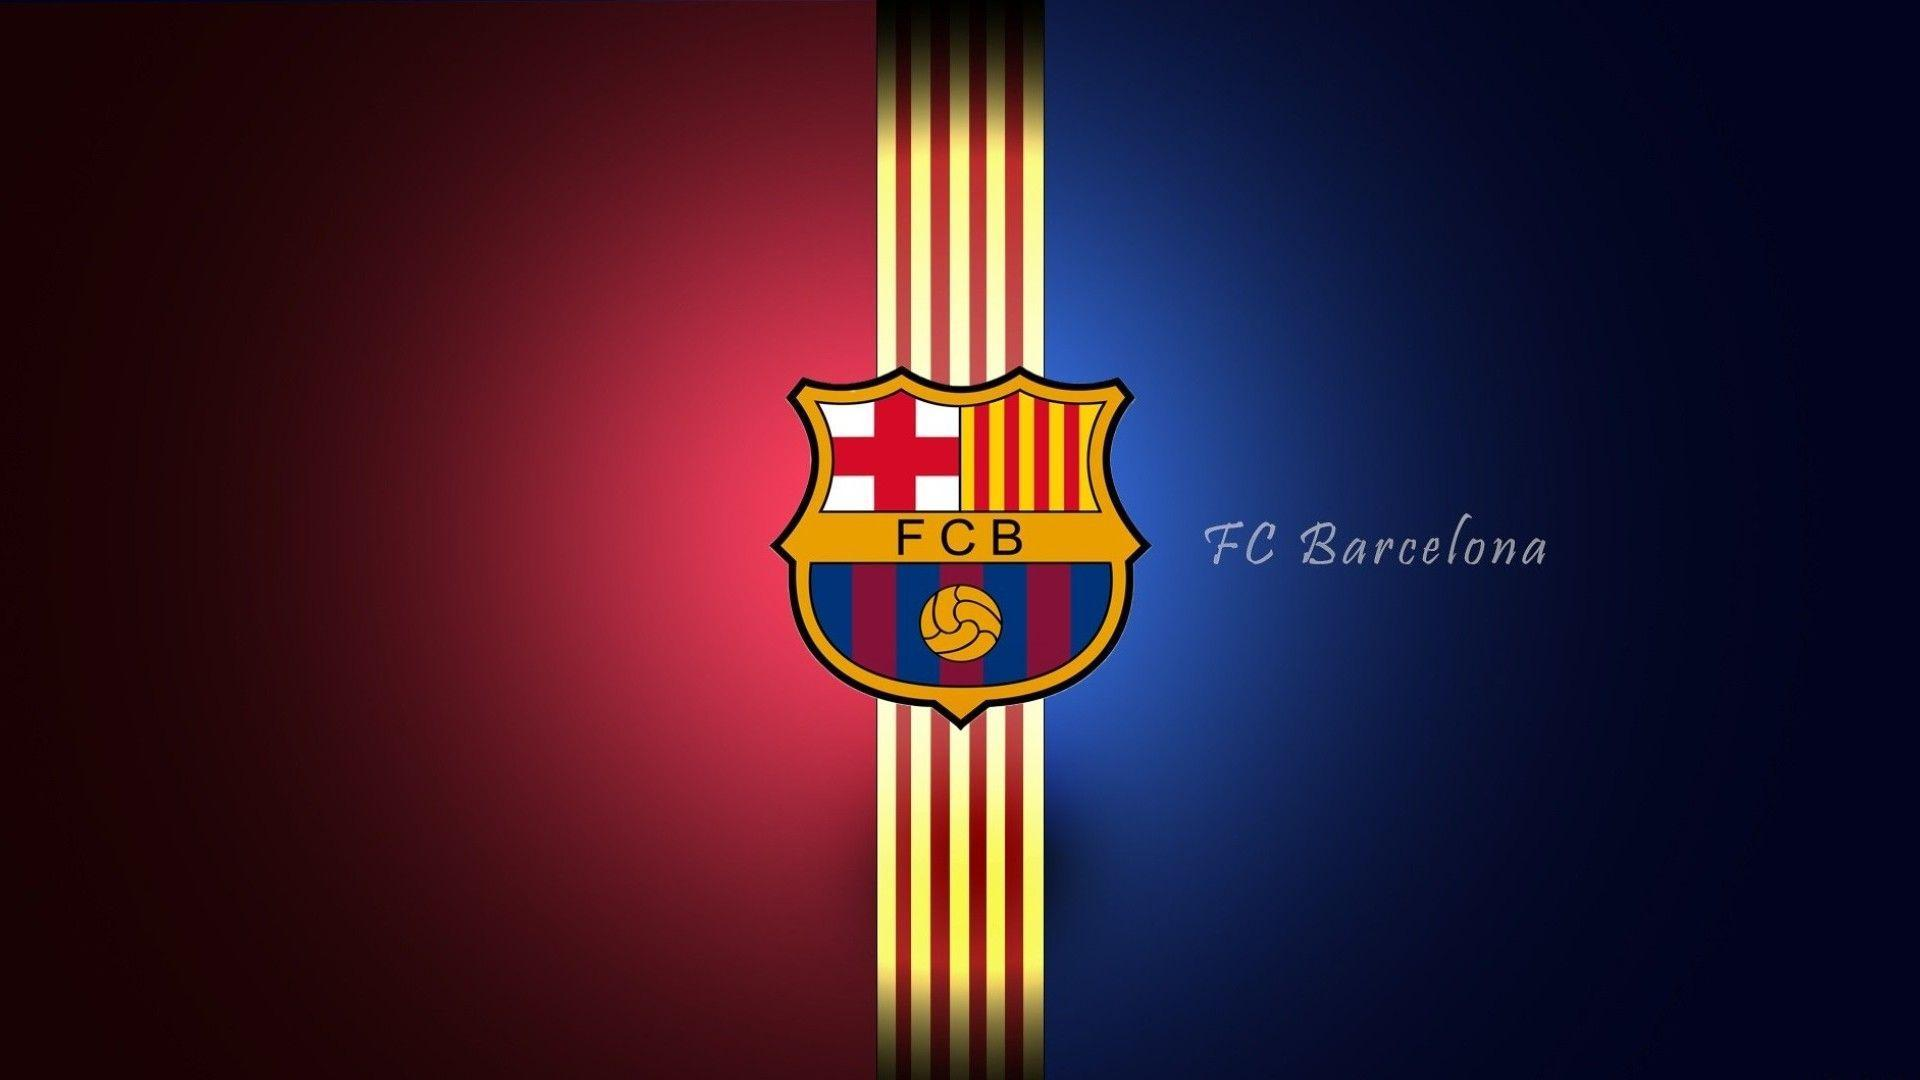 Barcelona Logo 2016 Wallpapers - Wallpaper Cave